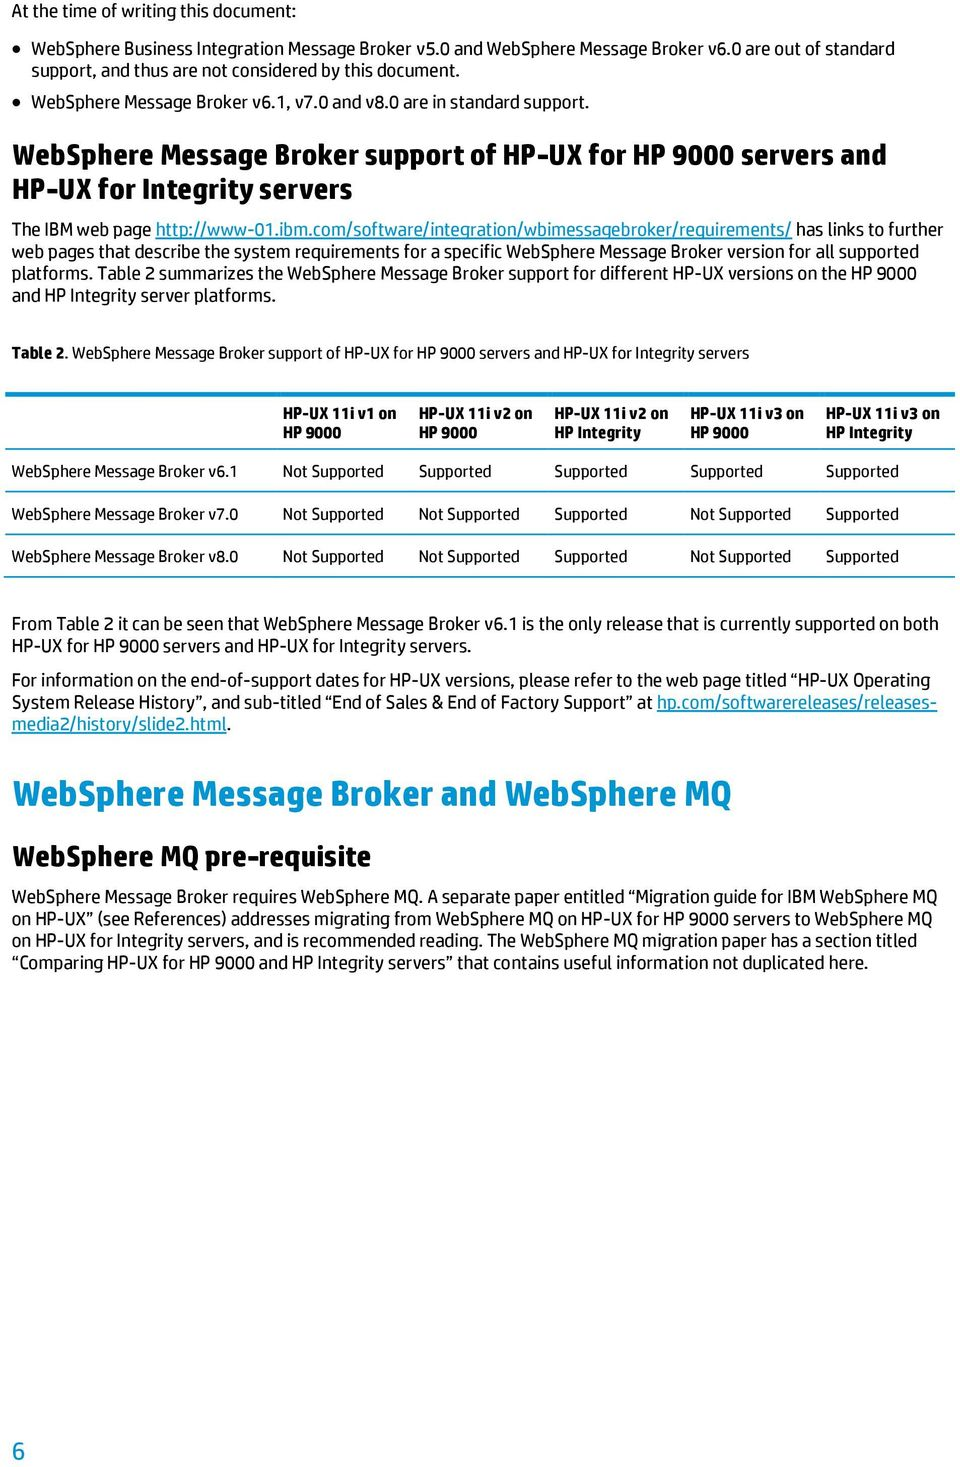 com/software/integration/wbimessagebroker/requirements/ has links to further web pages that describe the system requirements for a specific WebSphere Message Broker version for all supported